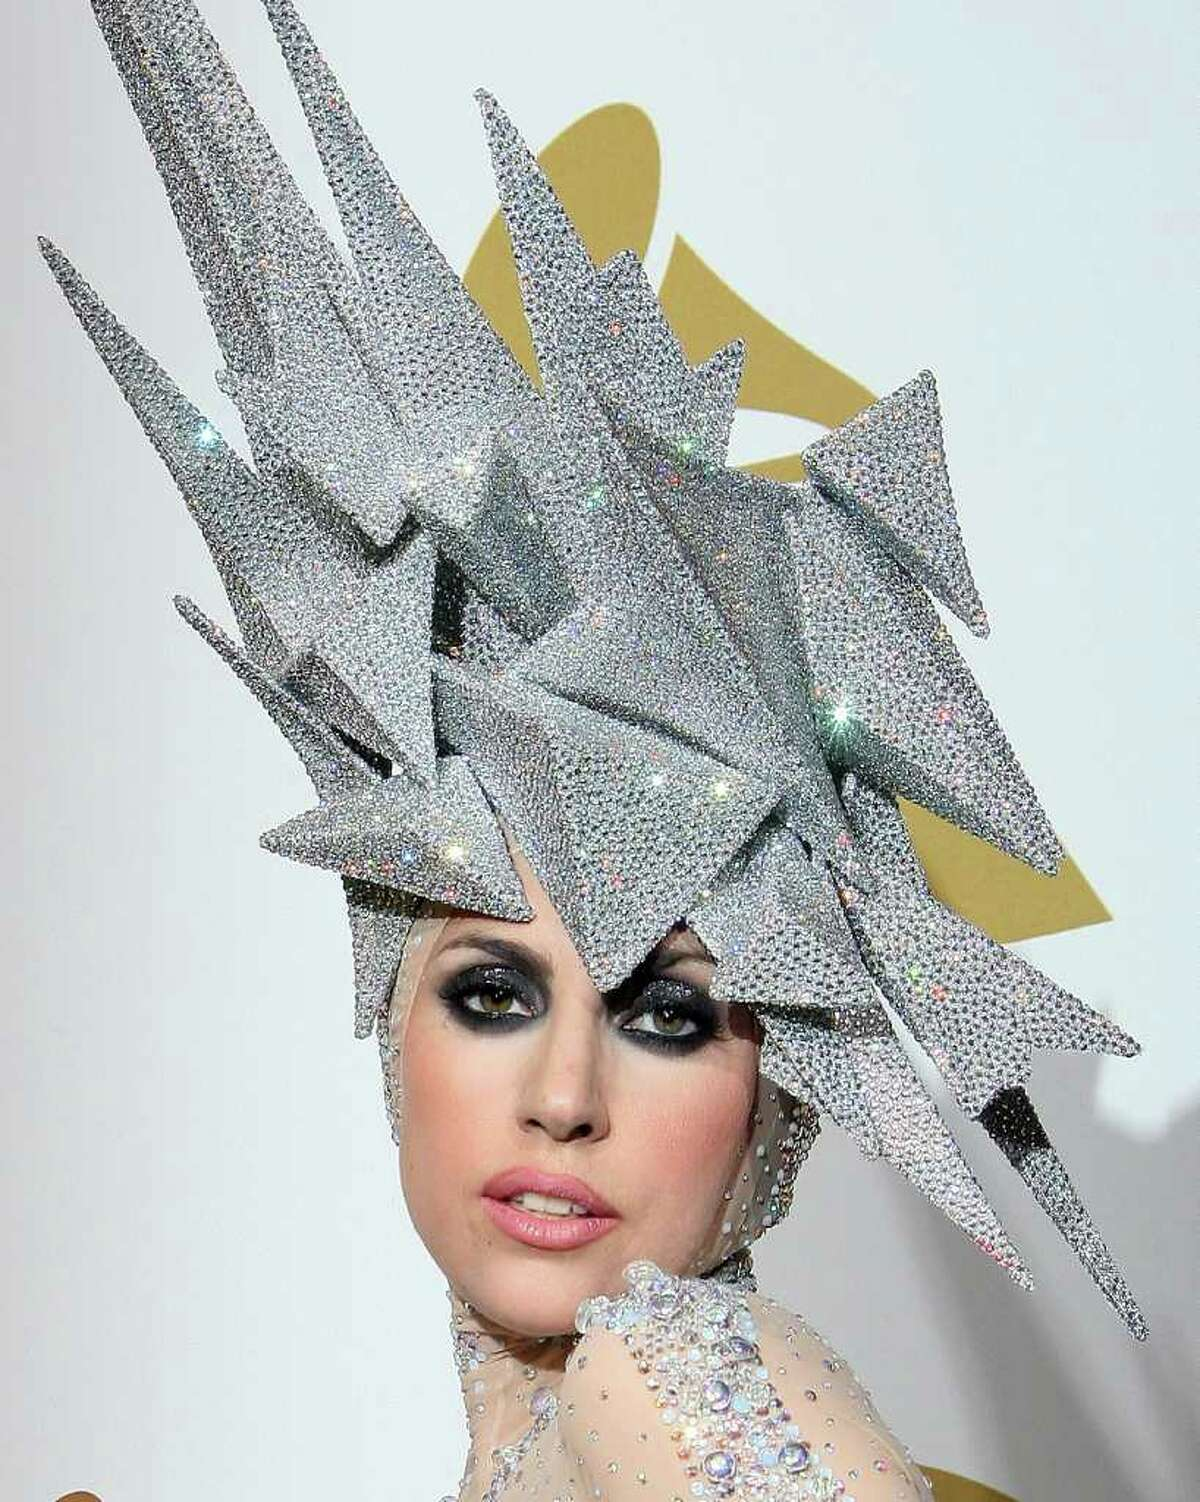 Lady Gaga poses with her awards during the 52nd annual Grammy Awards in Los Angeles, California on January 31, 2010.